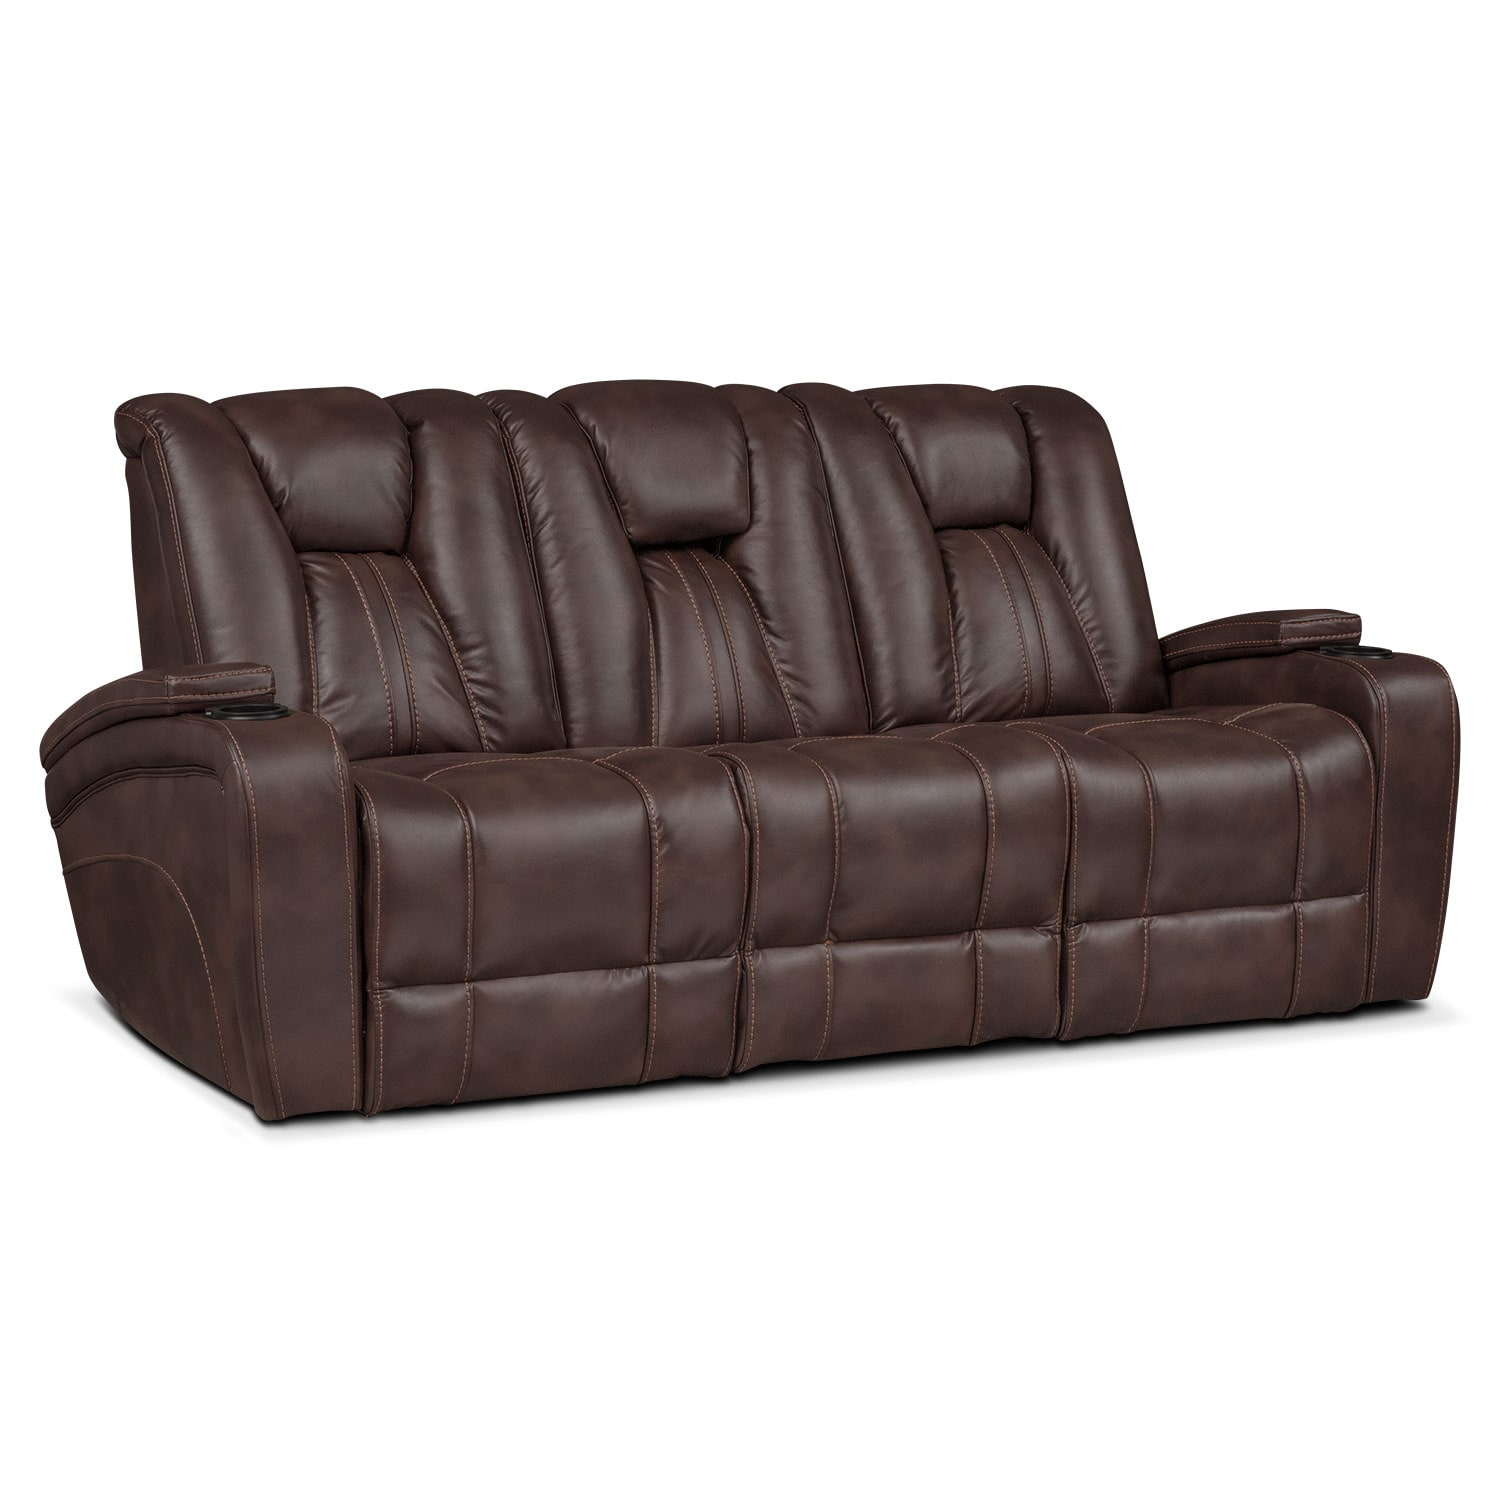 Dual Power Reclining Leather Sofa